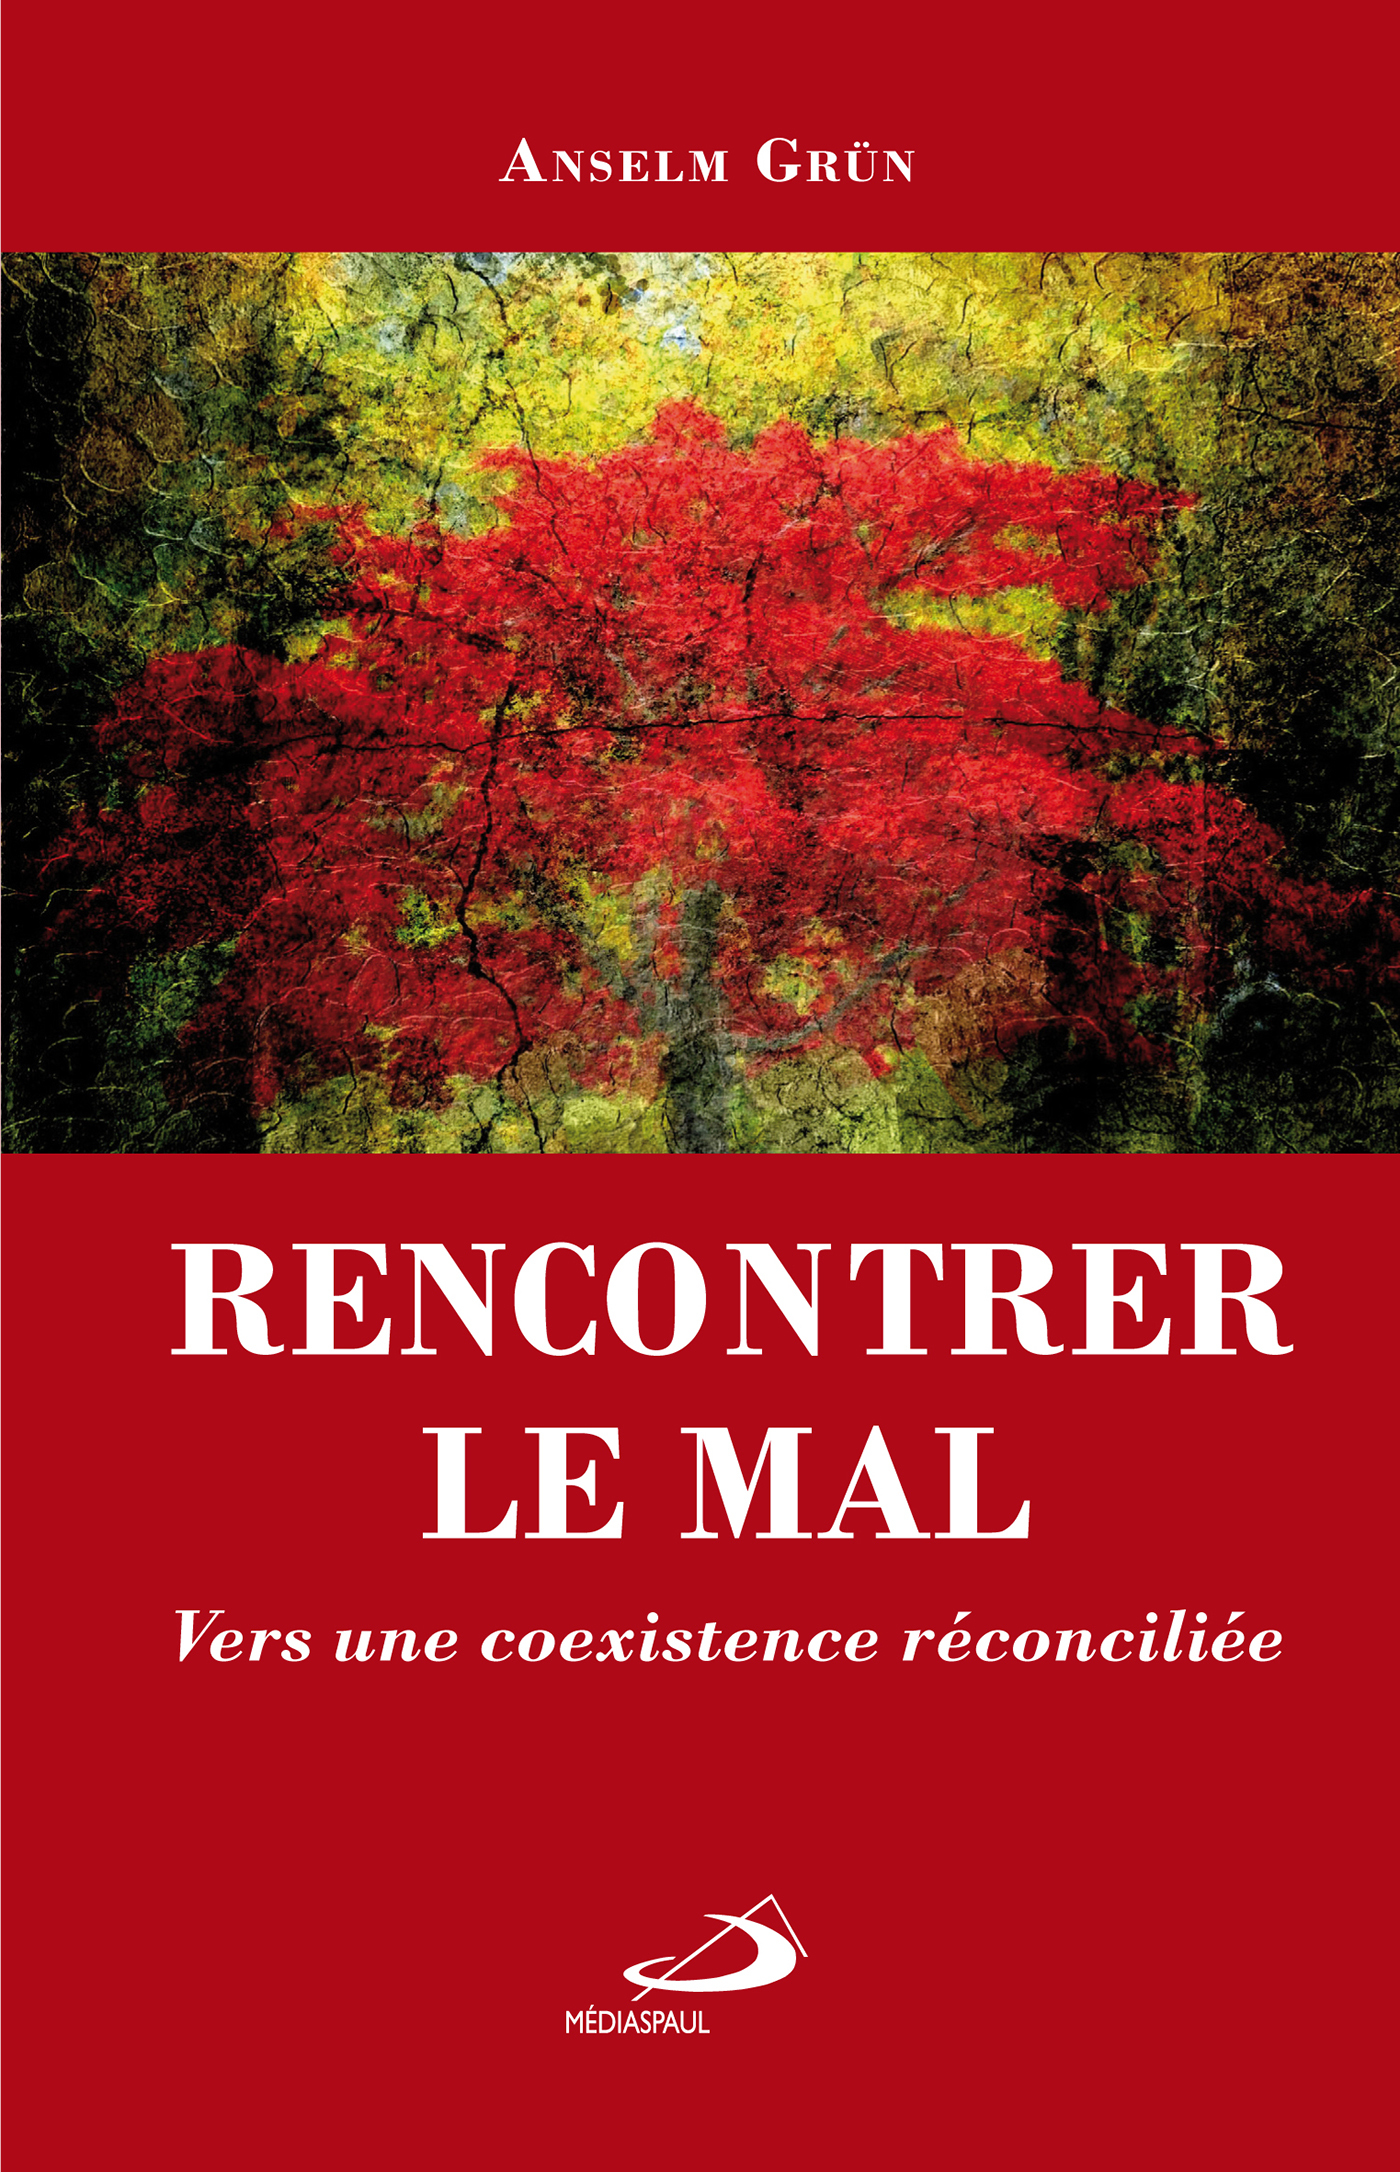 RENCONTRER LE MAL. VERS UNE COEXISTENCE RECONCILIEE